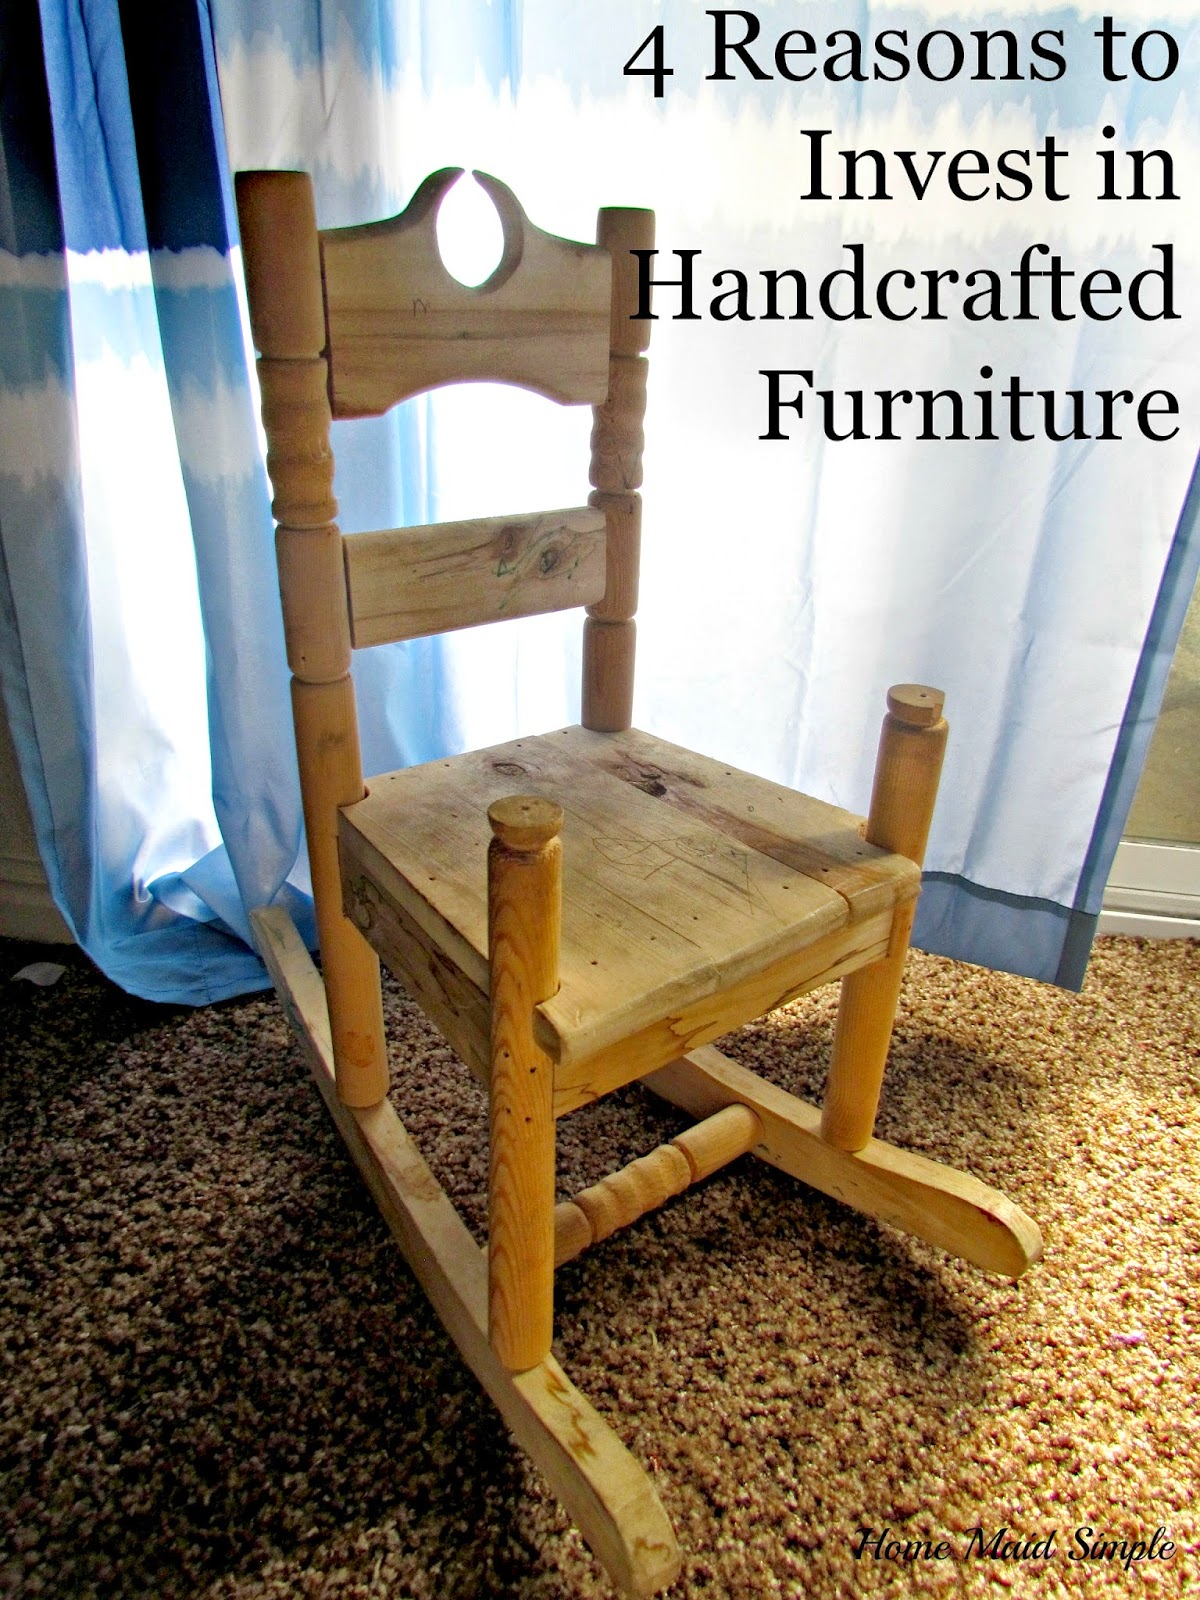 Reasons to invest in handcrafted furniture home maid